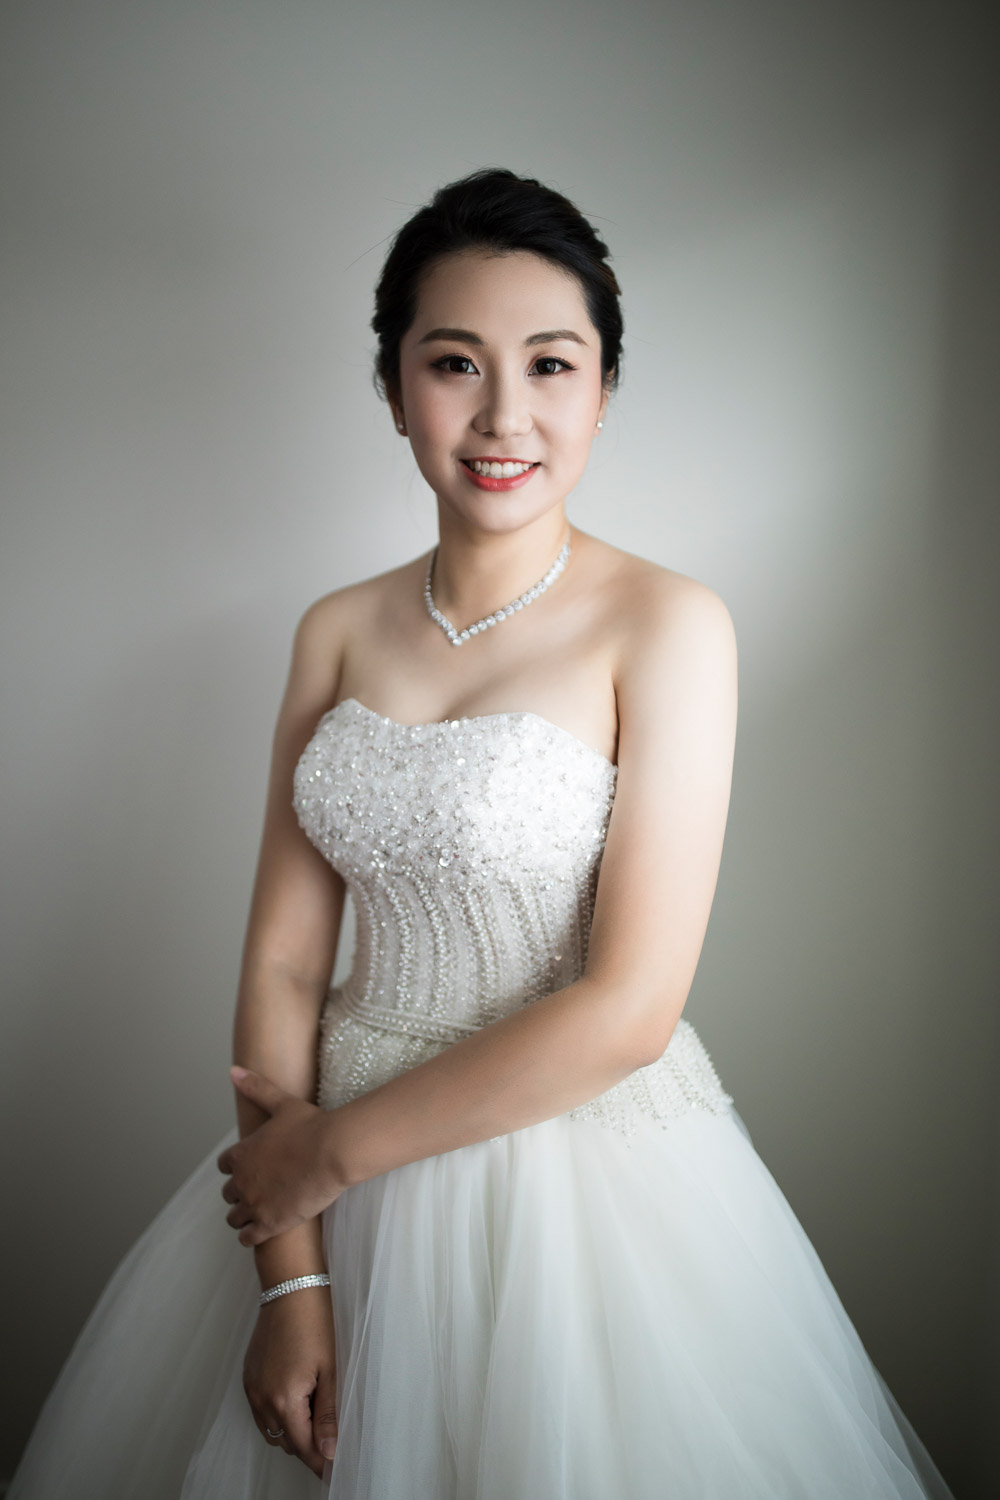 171208 Puremotion Wedding Photography Hope Island Intercontinental AnitaHuke-0009